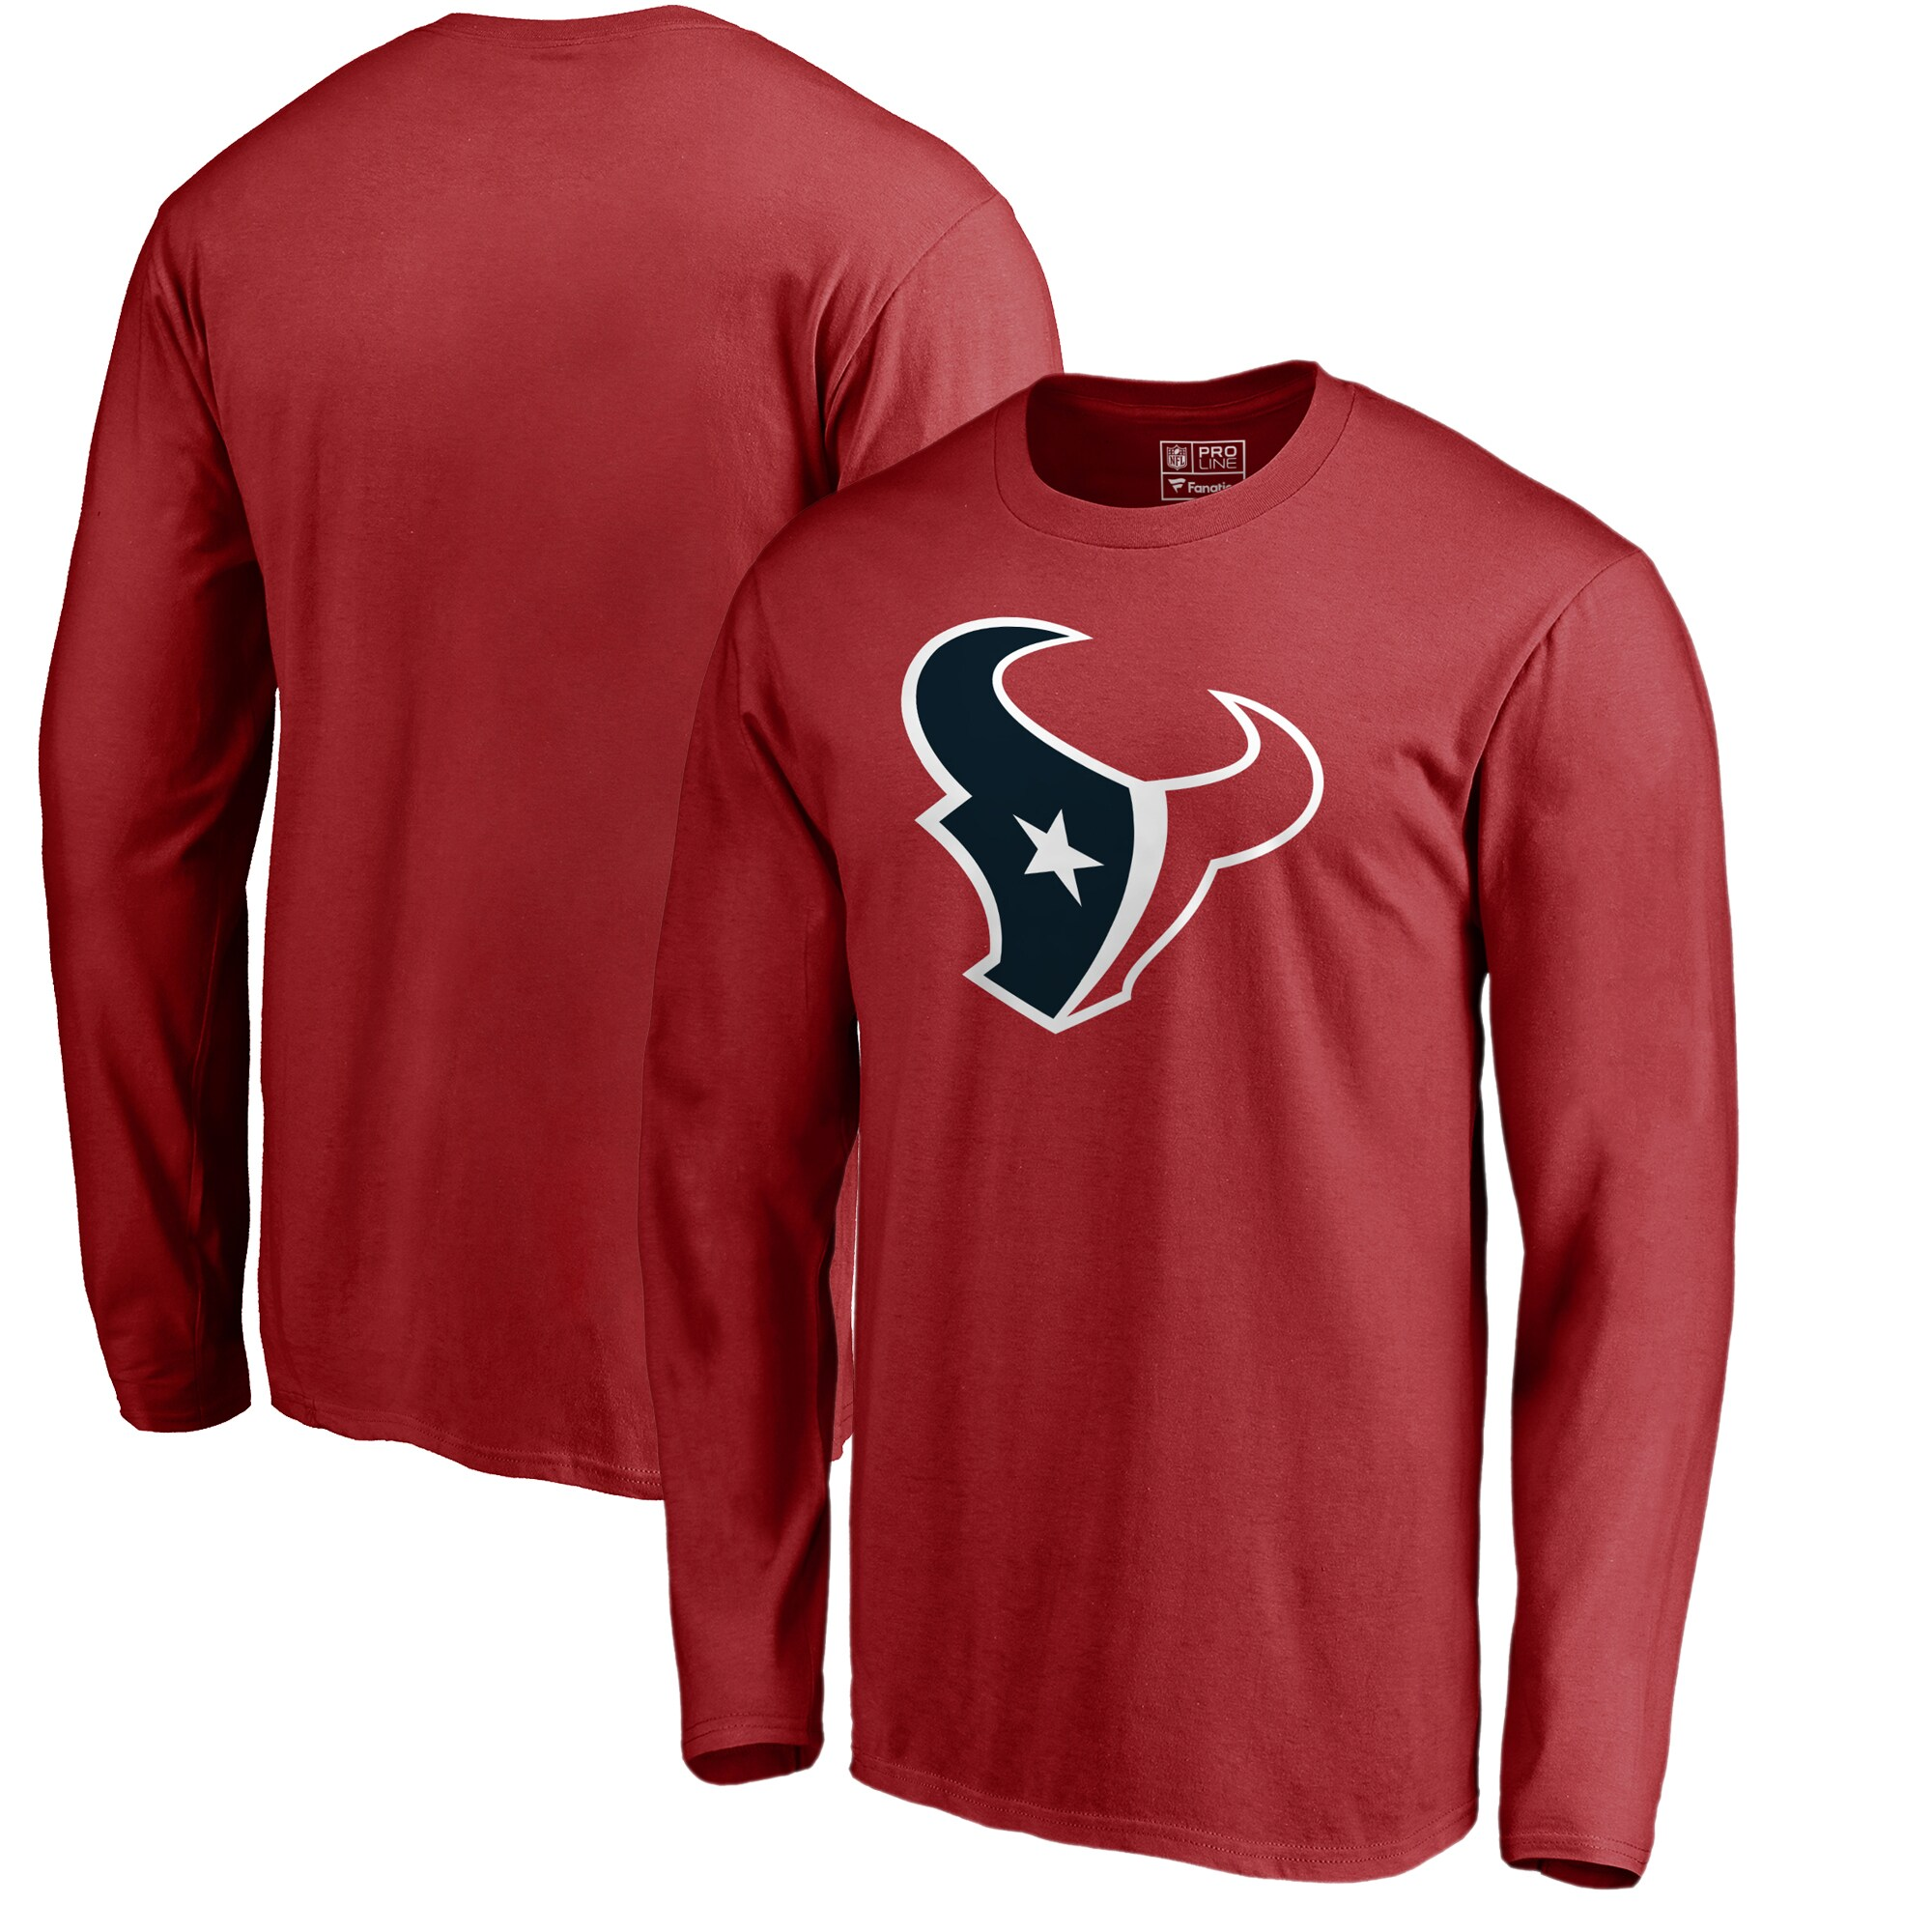 Houston Texans NFL Pro Line by Fanatics Branded Primary Logo Long-Sleeve T-Shirt - Red